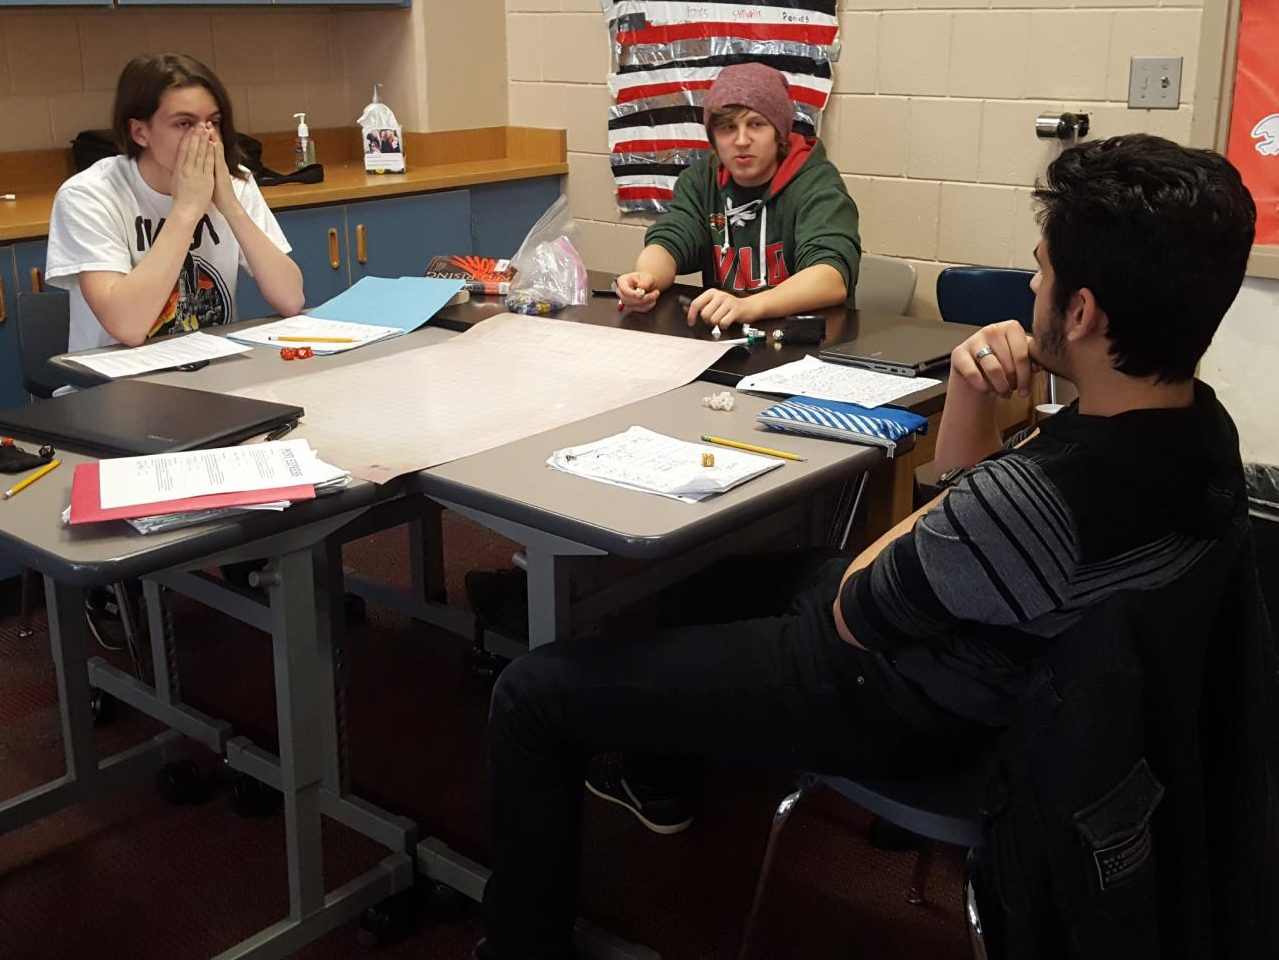 Dungeons and Dragons club debate over semantics. Pictured from left to right are junior Rowan Bell-Myers, senior Nathan Breisler, and senior Aztlan Sanchez. The other two members, senior Tyhlir Lowry and junior Aaron Mozey were not present at the session on Feb. 12. The adventuring frequently gets side-tracked when someone brings up memes or the practicalities of magic in real life.